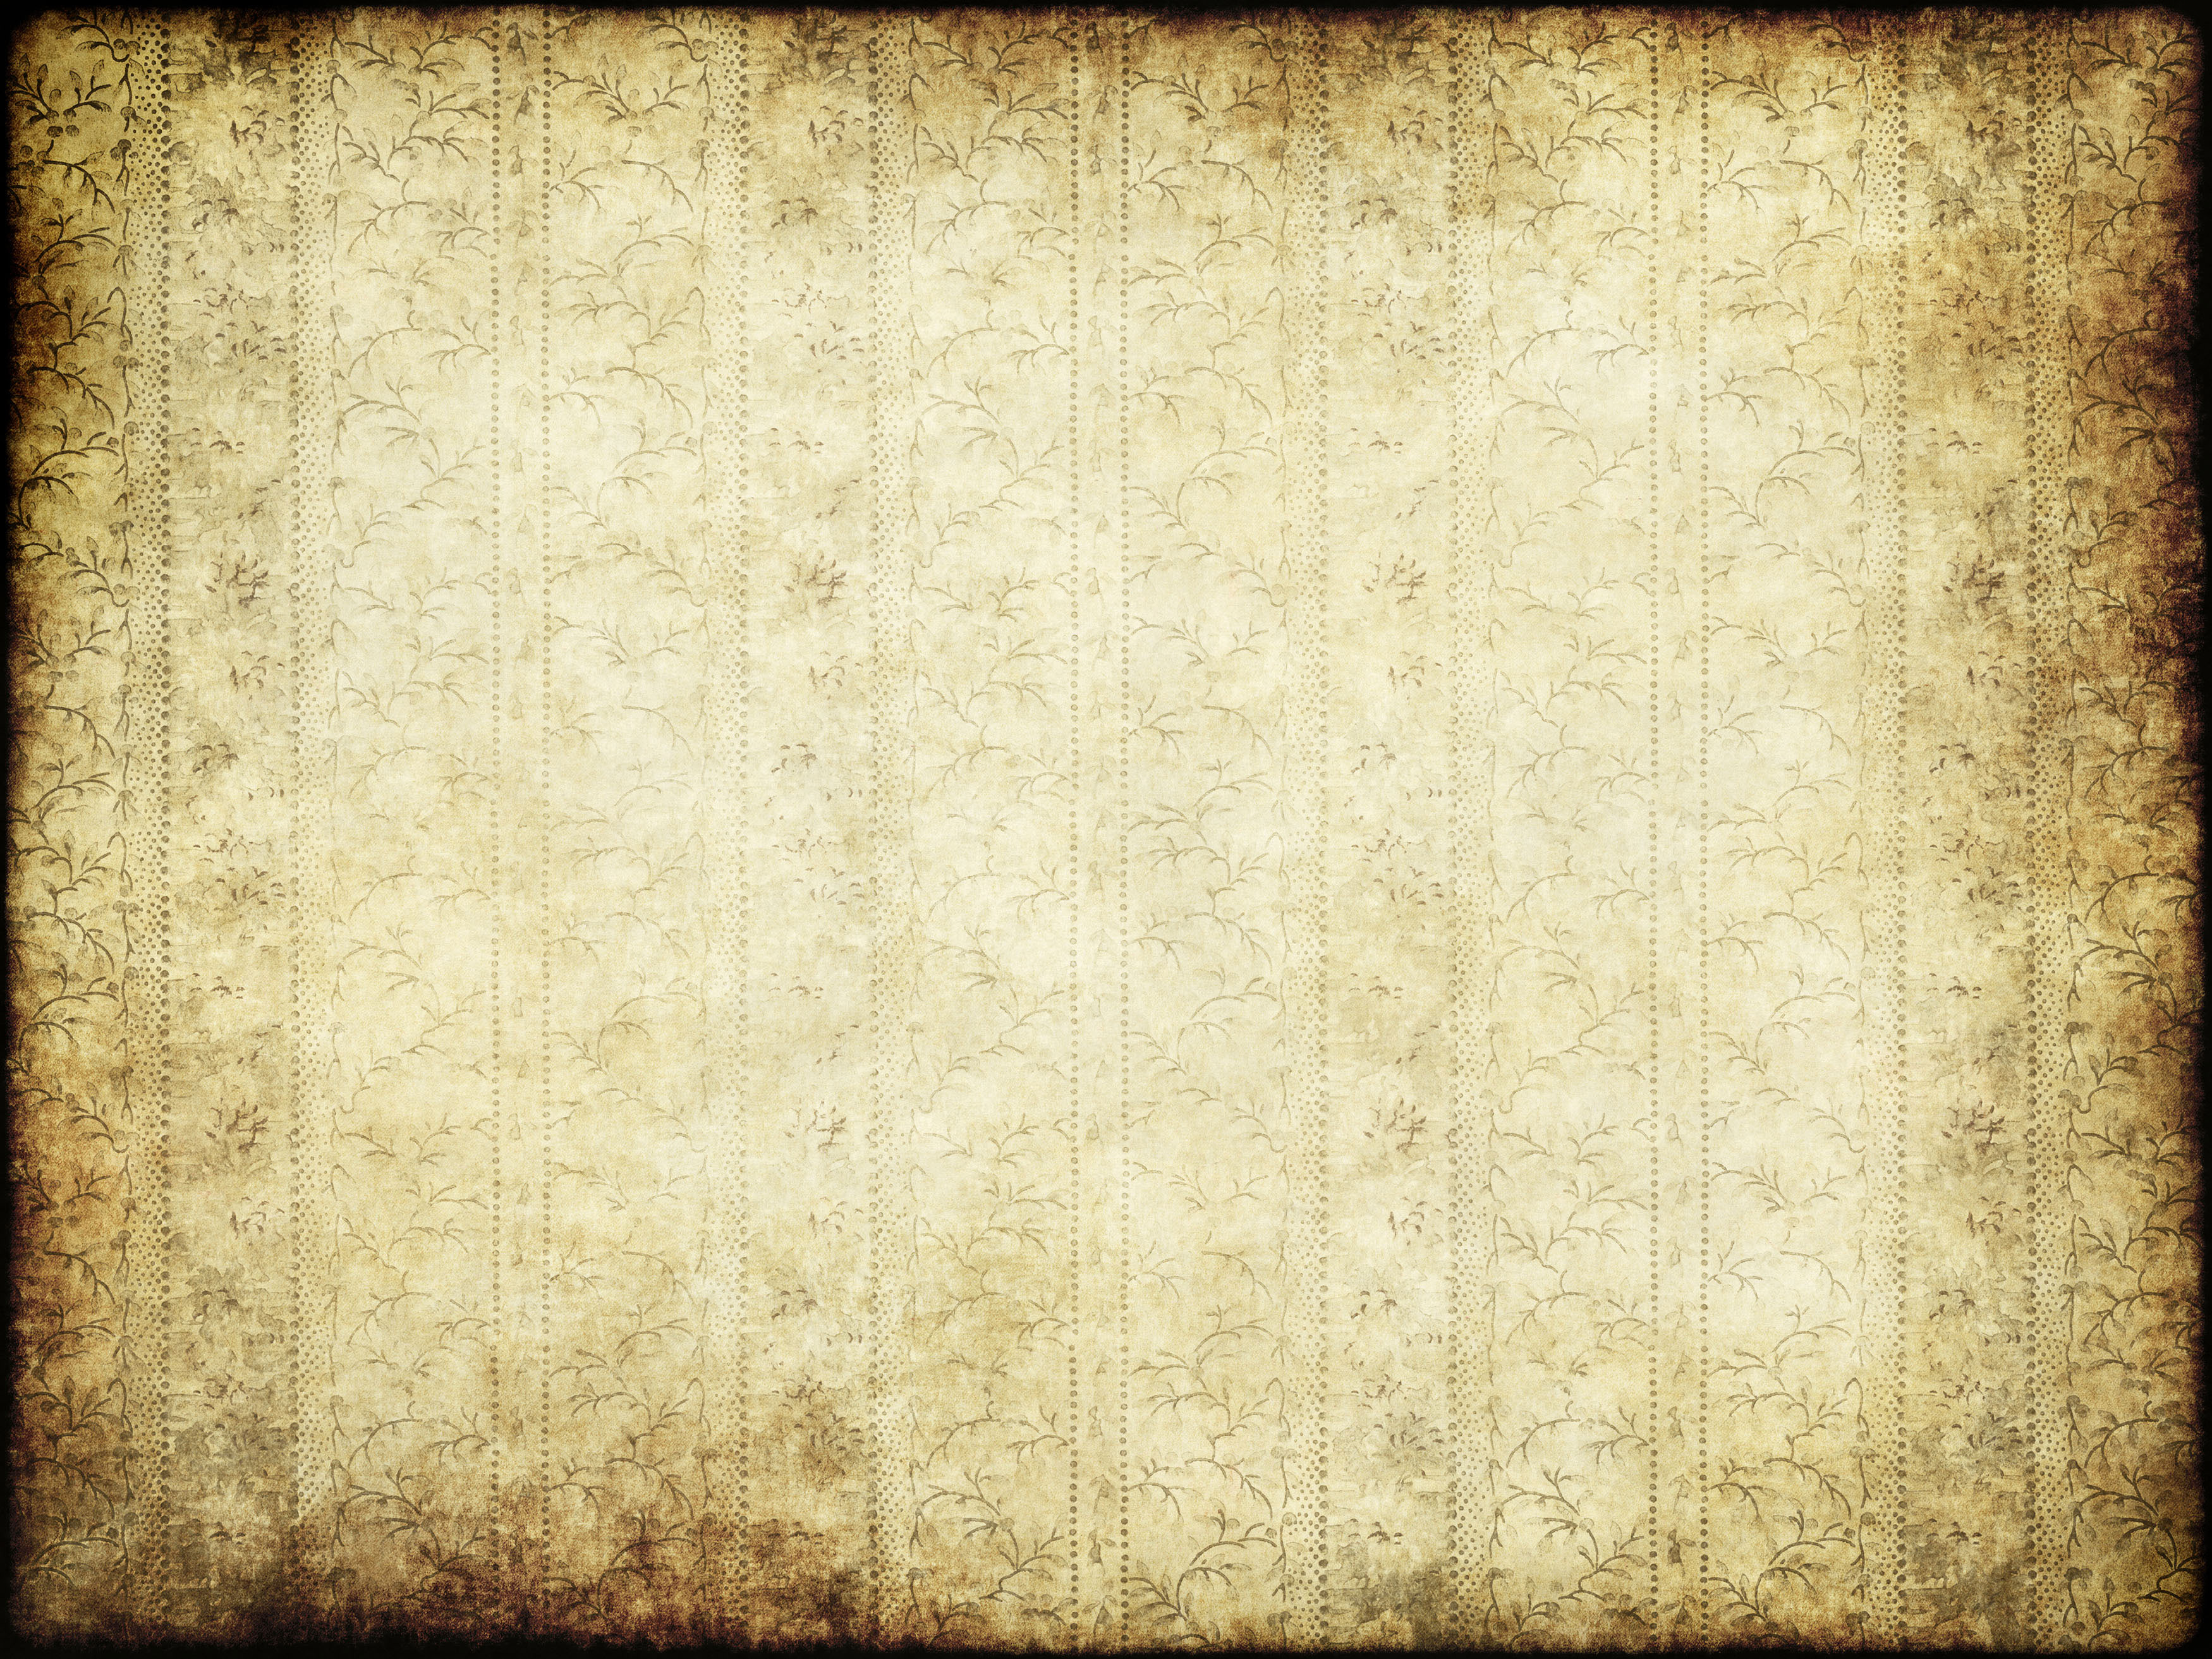 Grunge Background Of Old Paper Texture Background